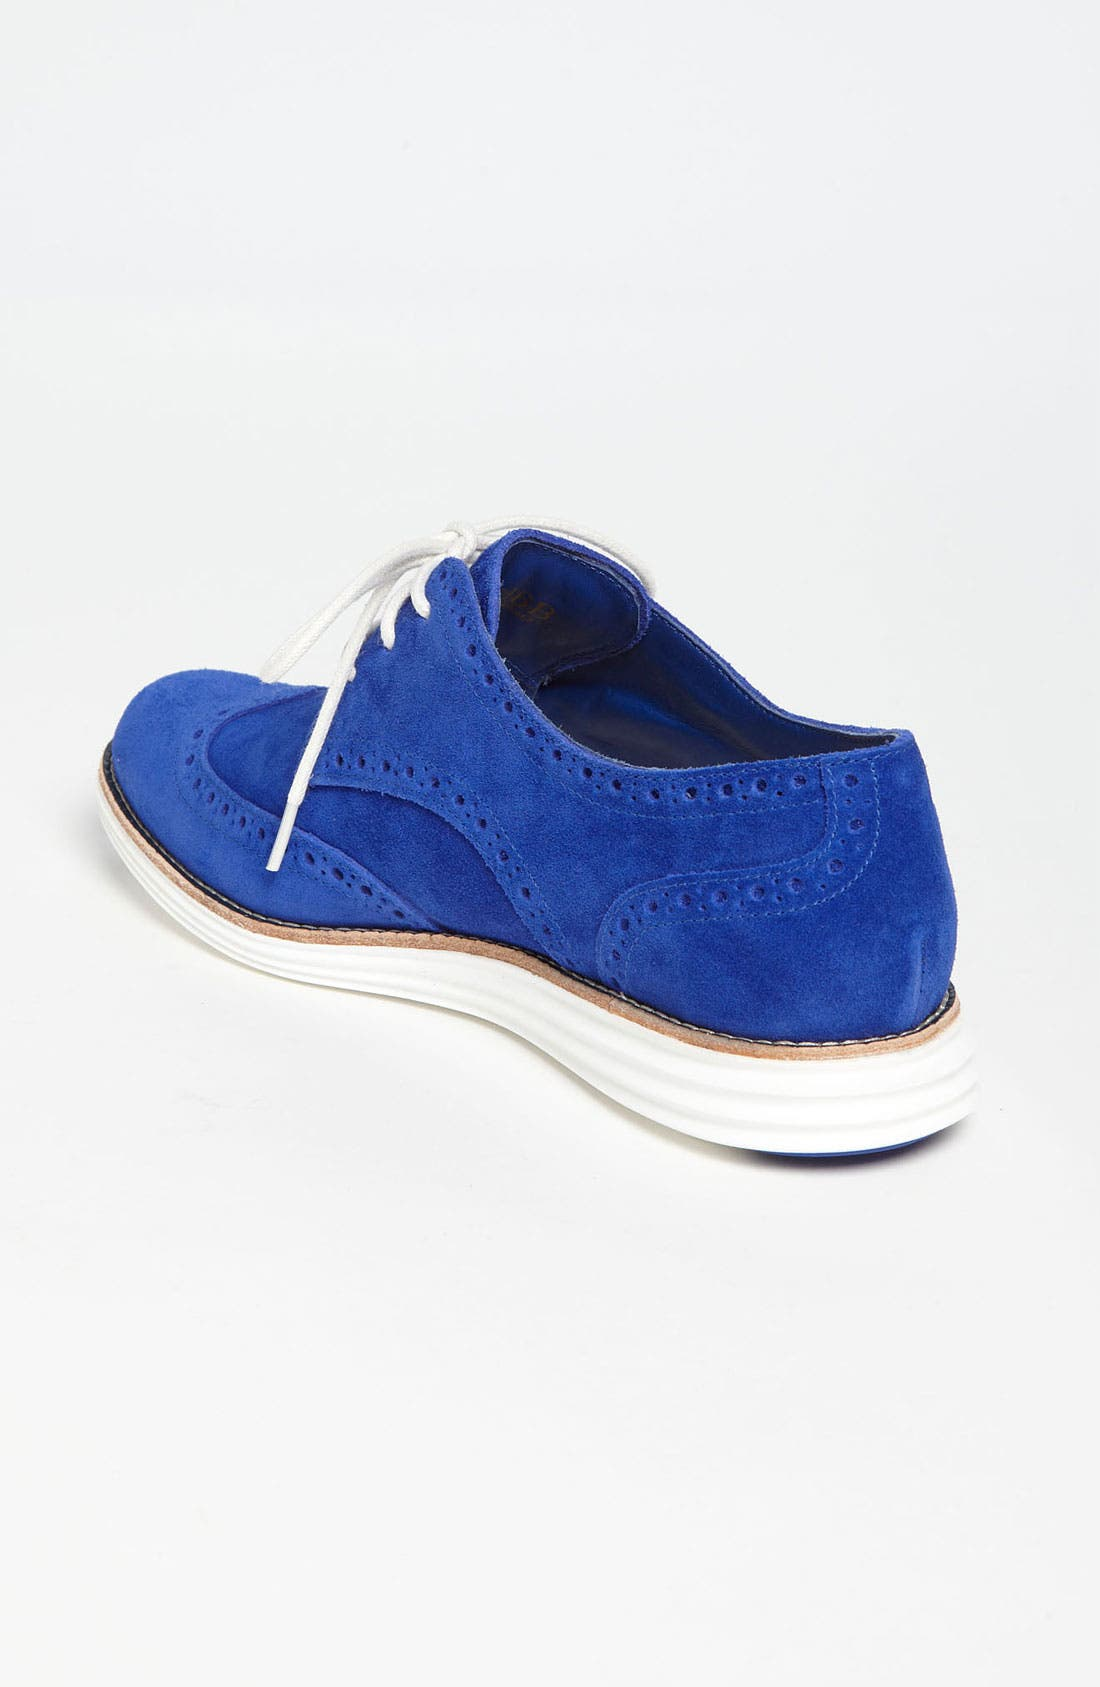 Alternate Image 2  - Cole Haan 'LunarGrand' Wingtip Oxford (Women)